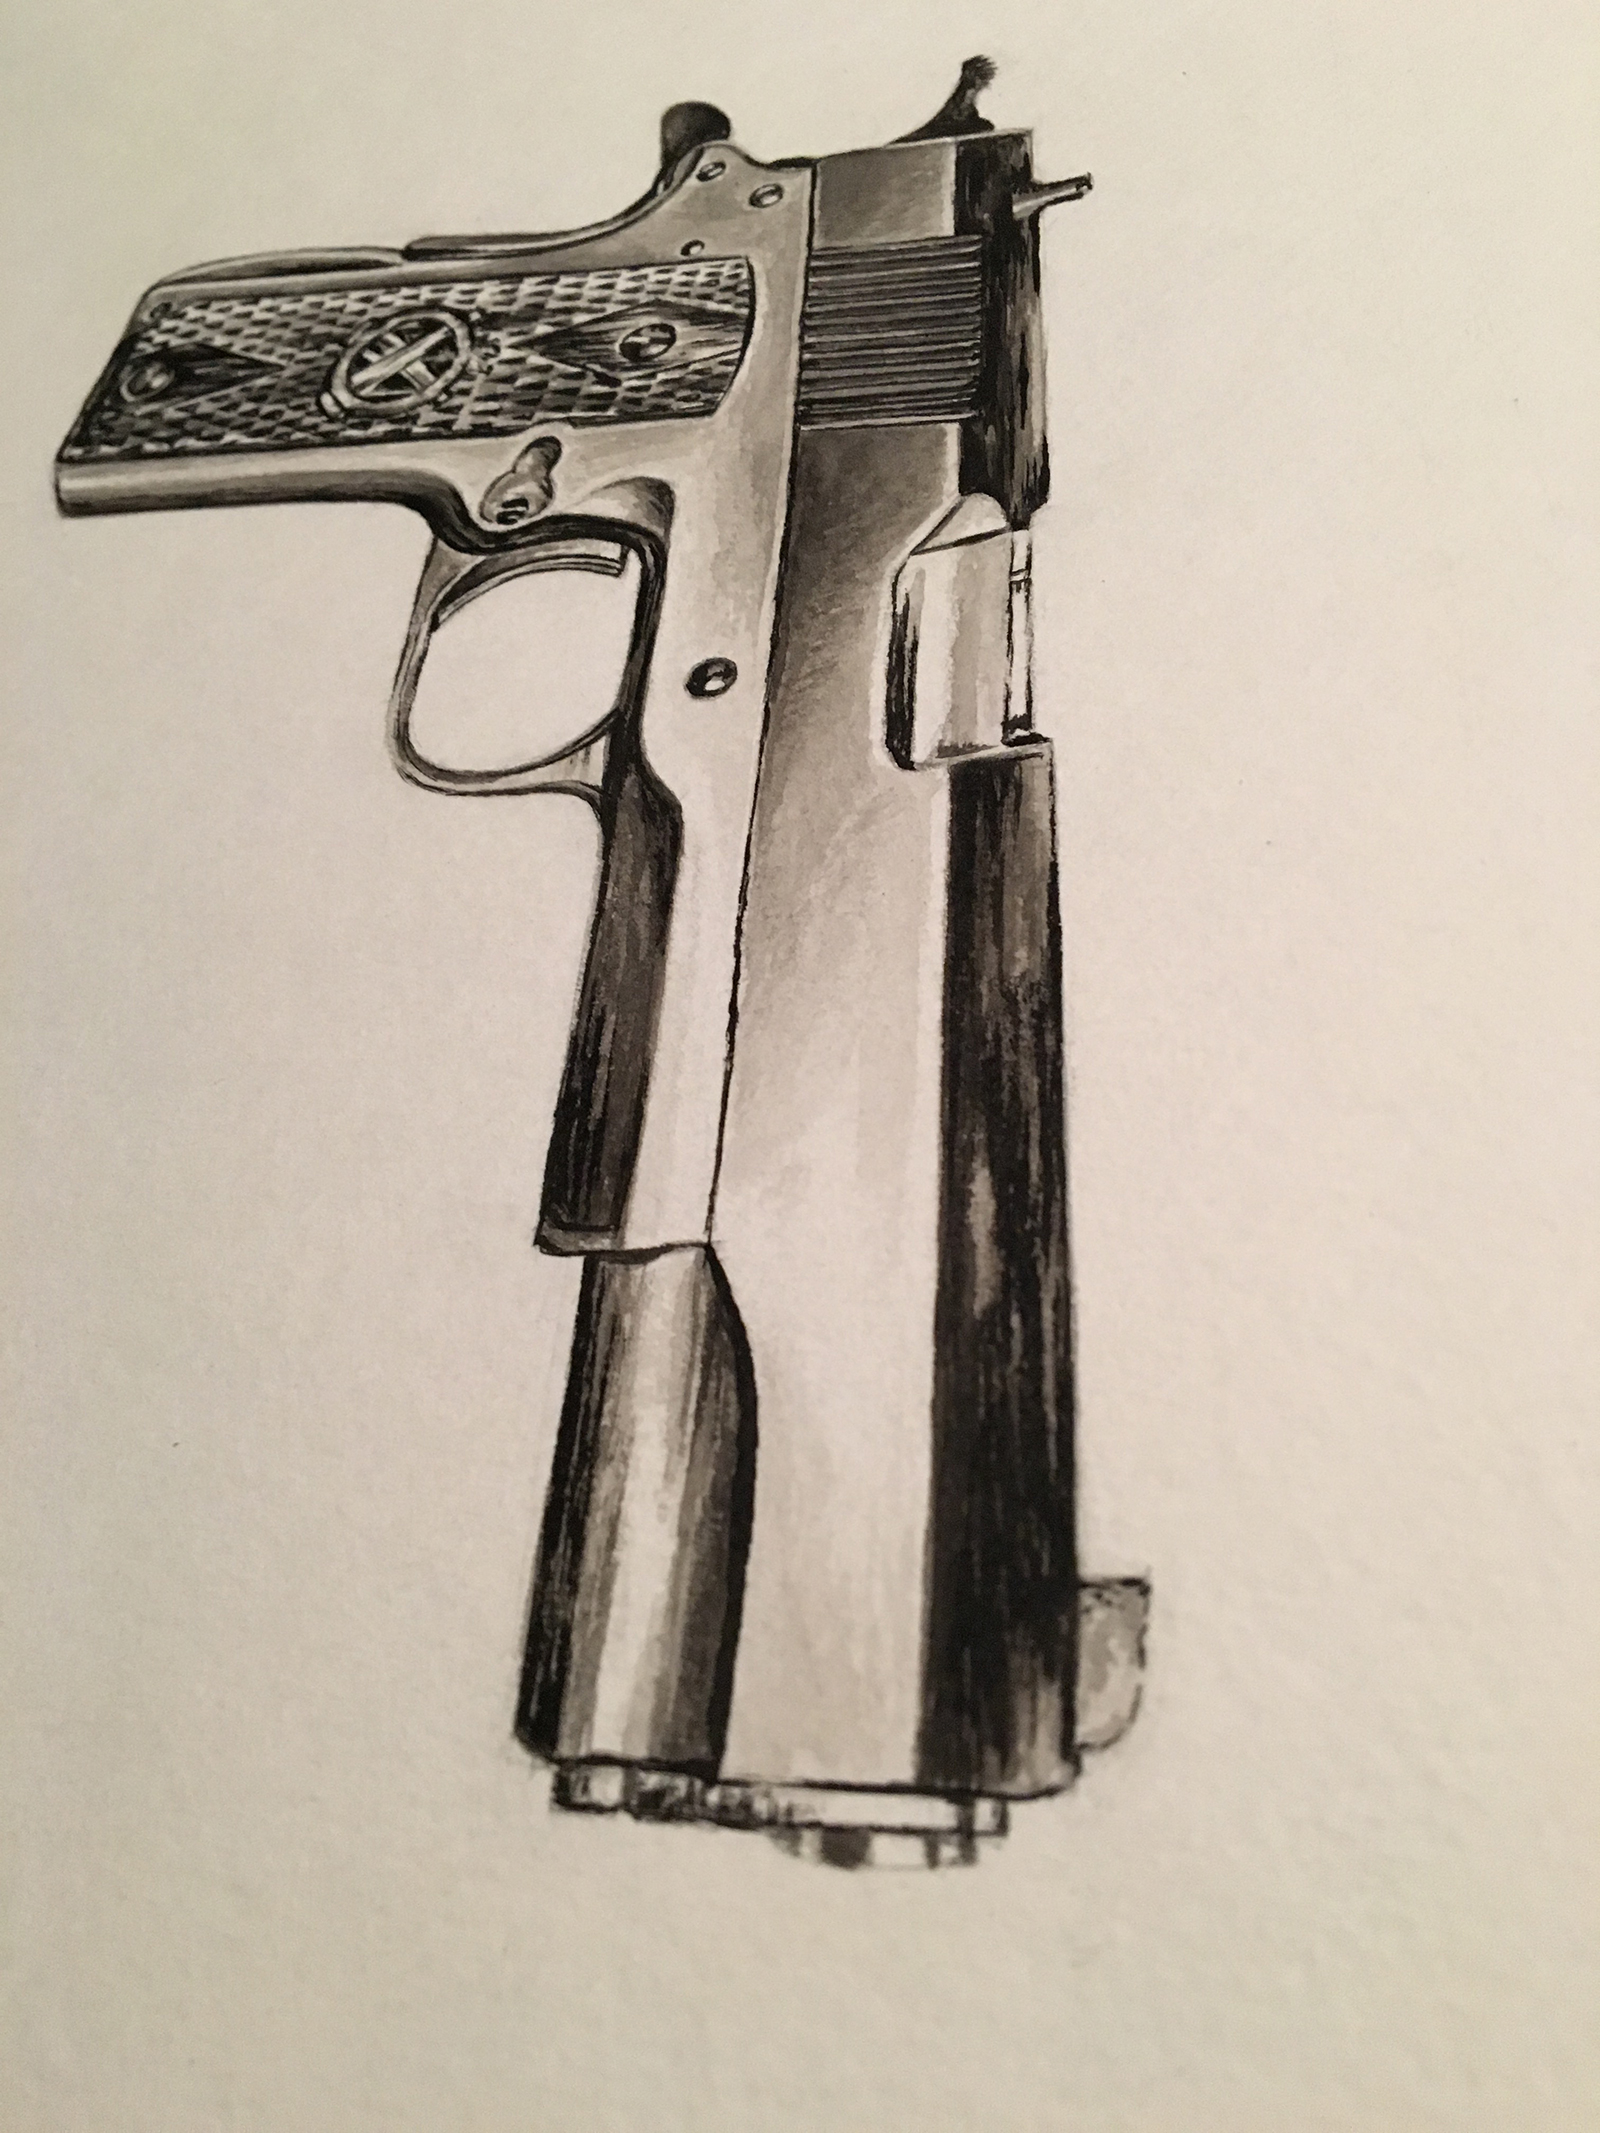 springfield 1911 ink wash painting by jordan fretz